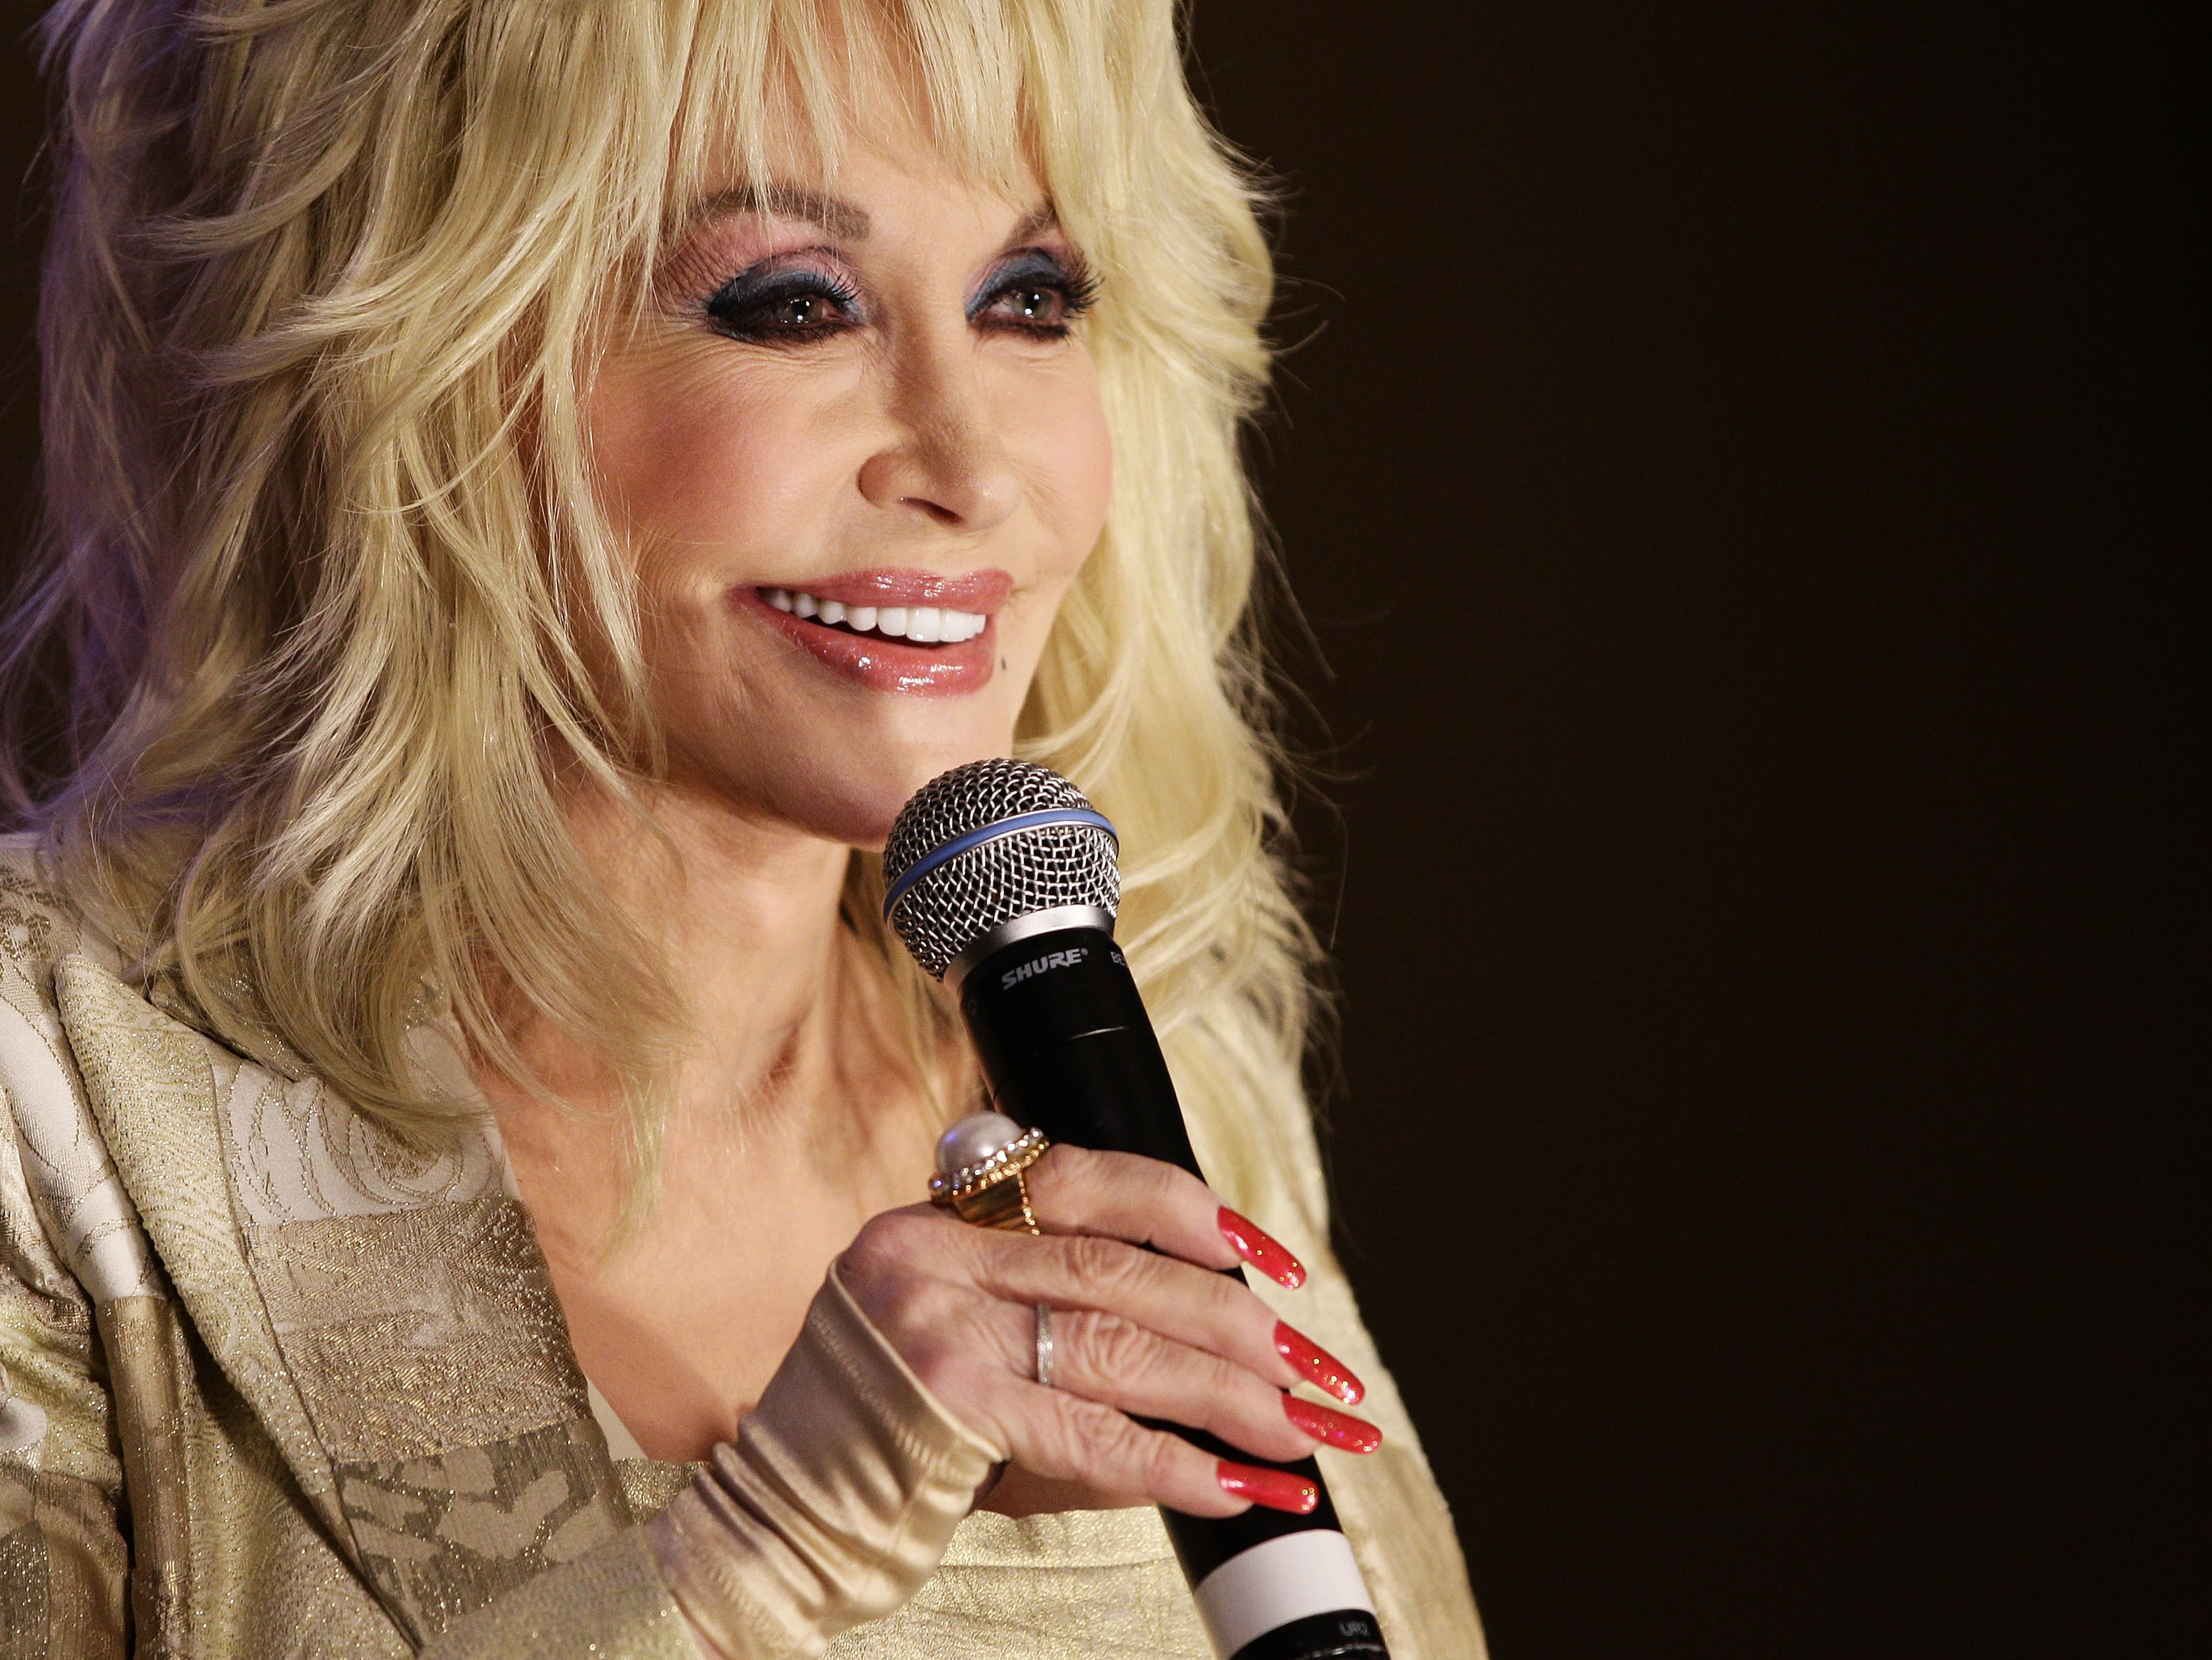 Dolly Parton: After Decades Of Dreaming, Dolly Parton Says, 'Dream More